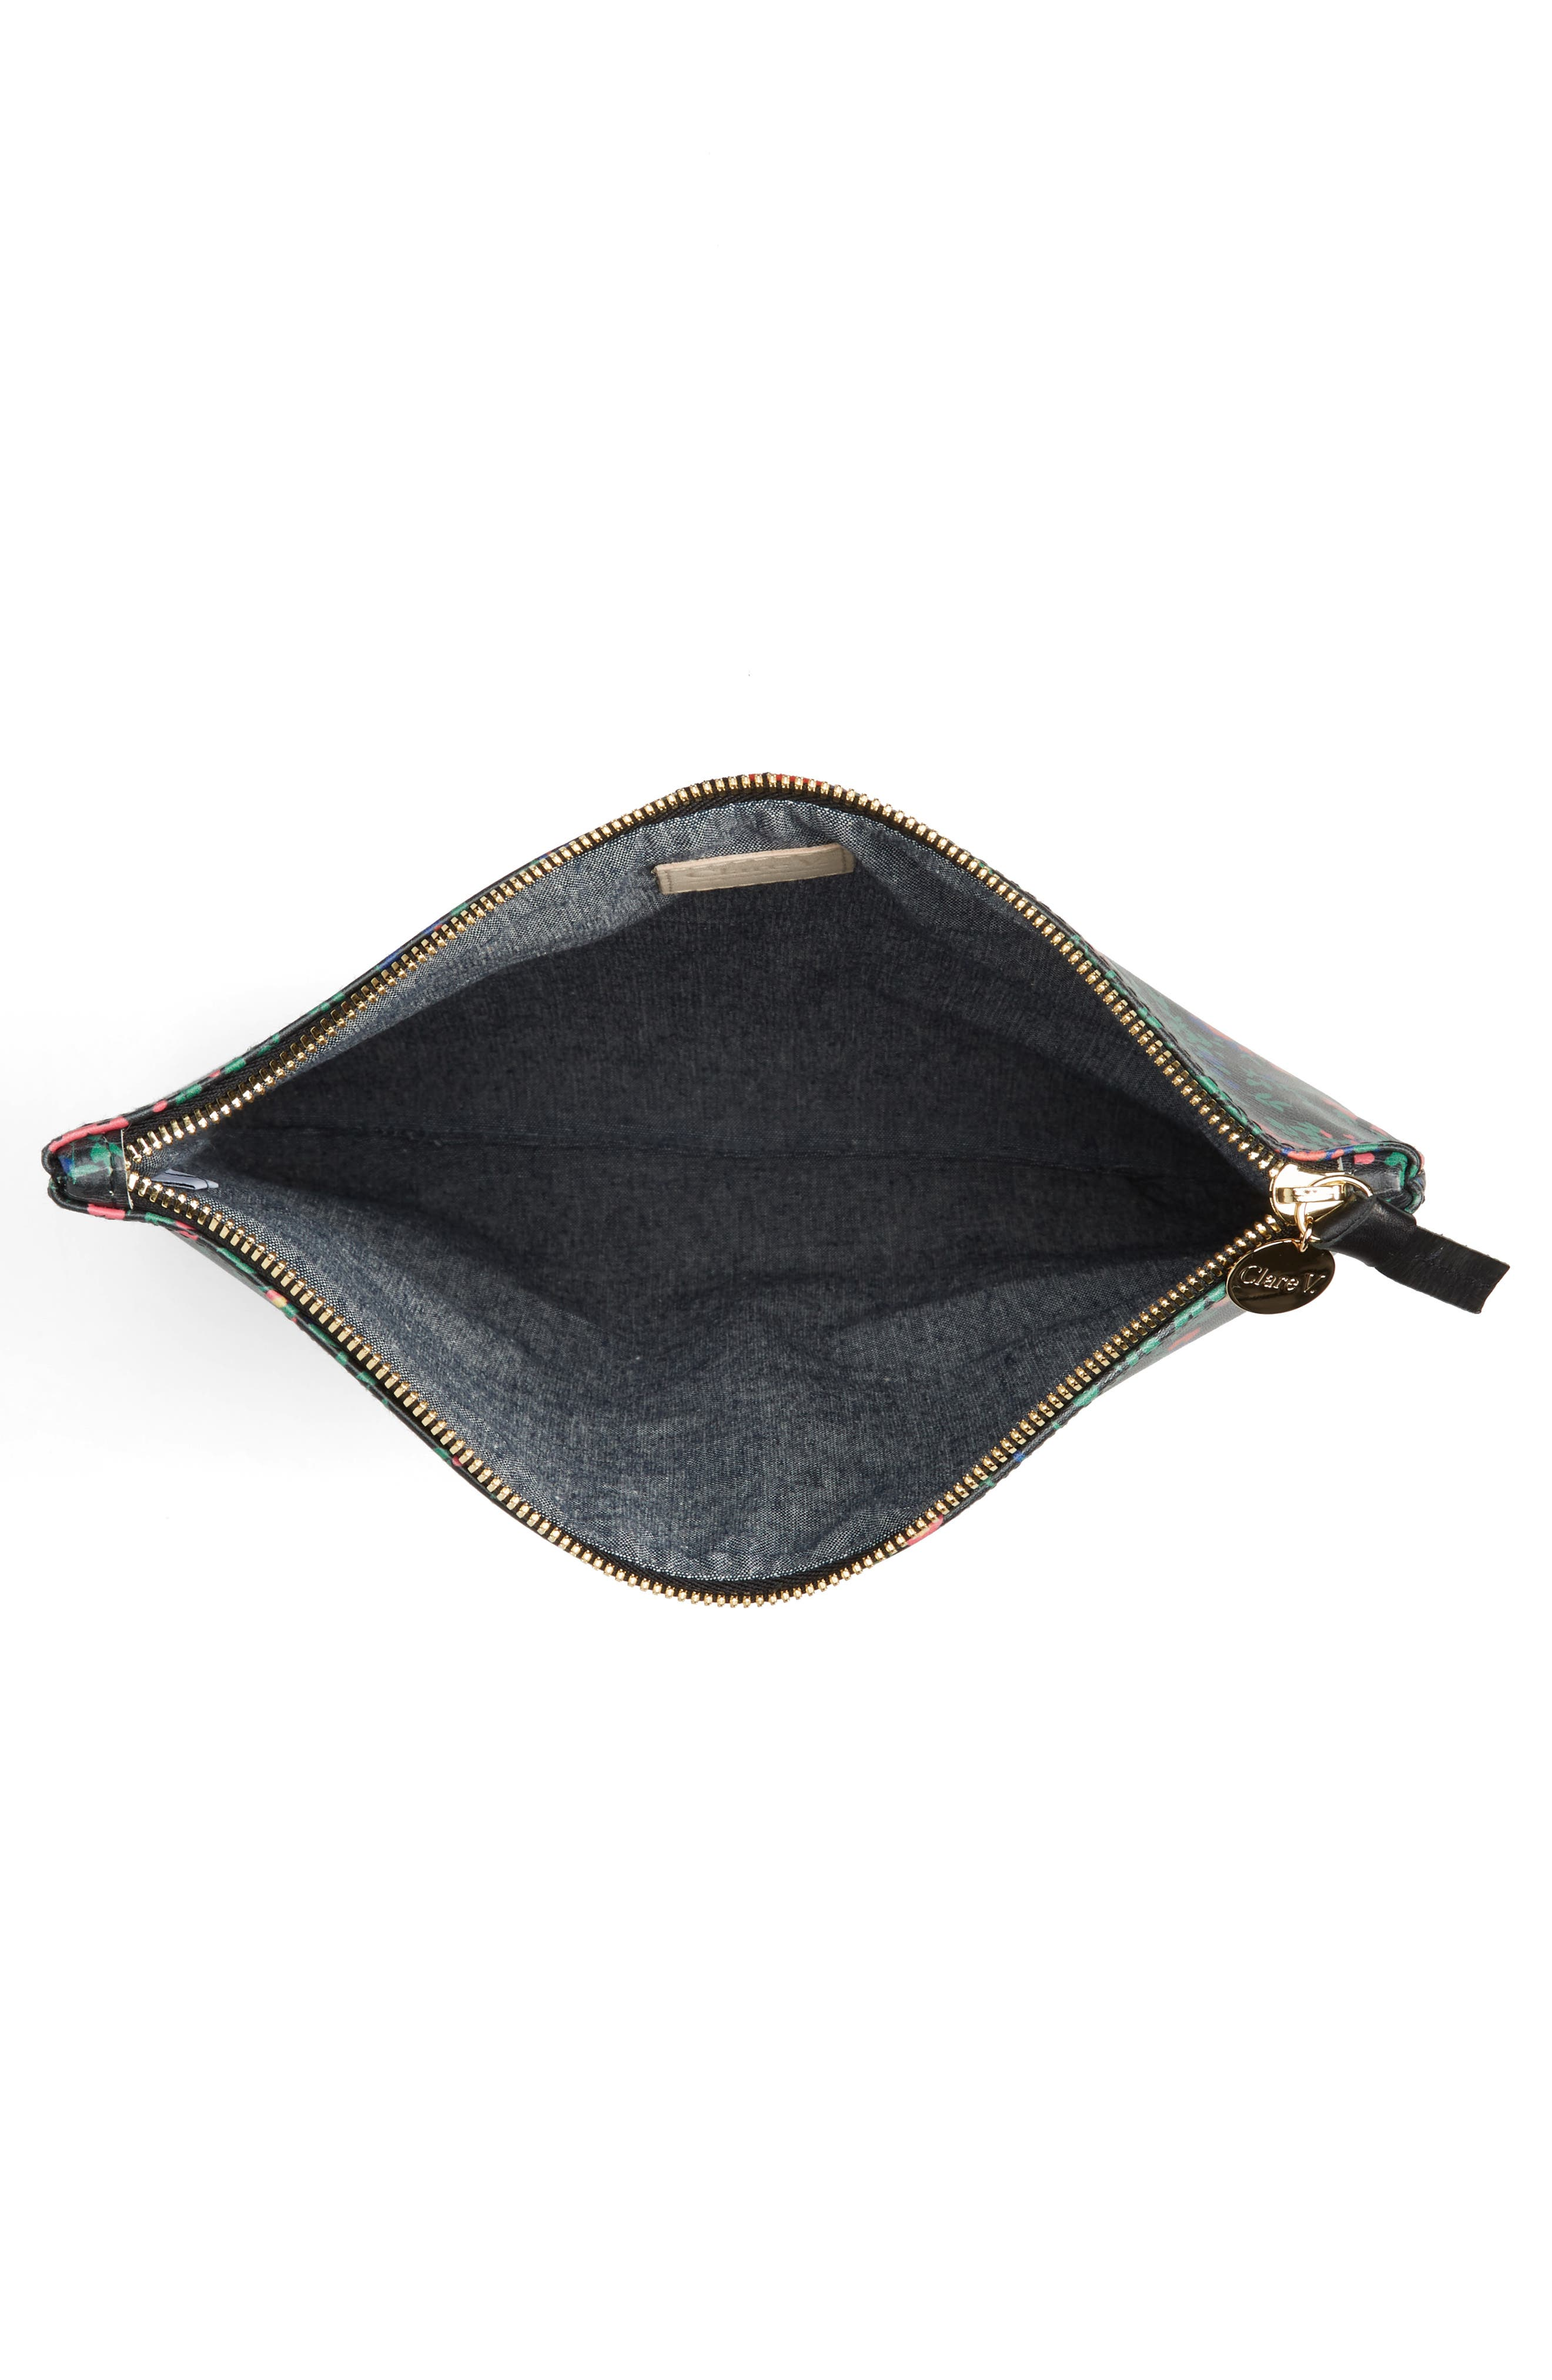 Foldover Ditzy Floral Leather Clutch,                             Alternate thumbnail 4, color,                             BLACK